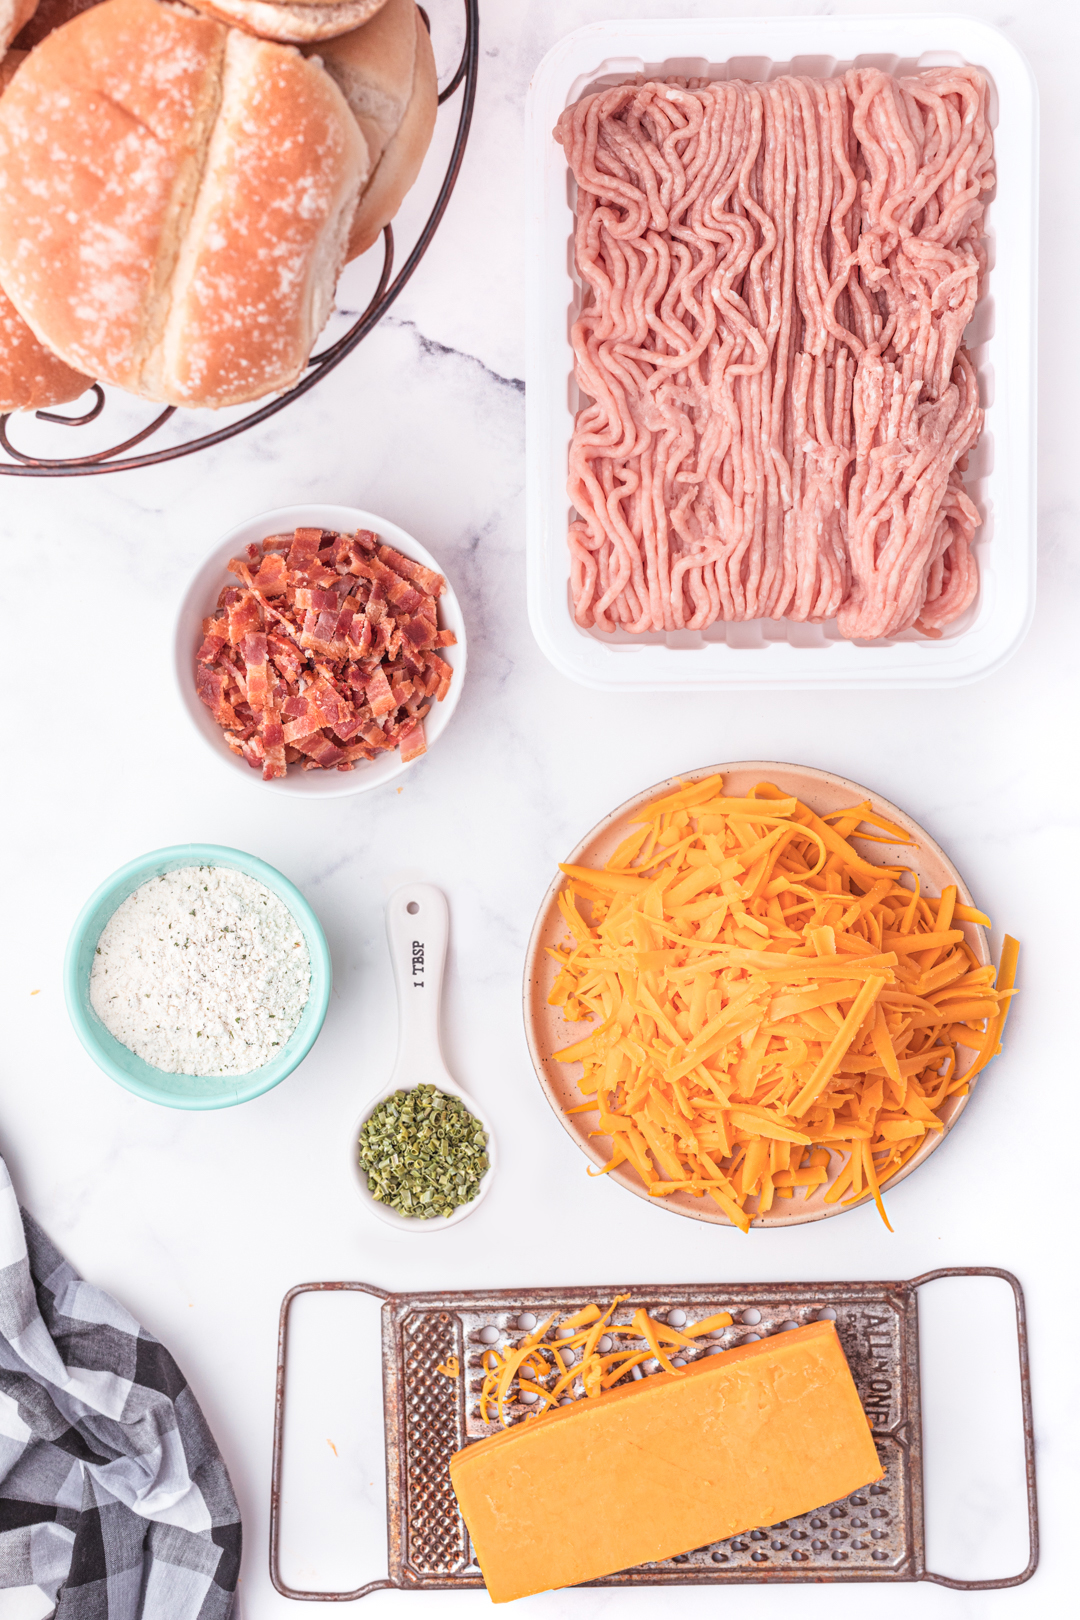 ingredients laid out for chicken burger recipe